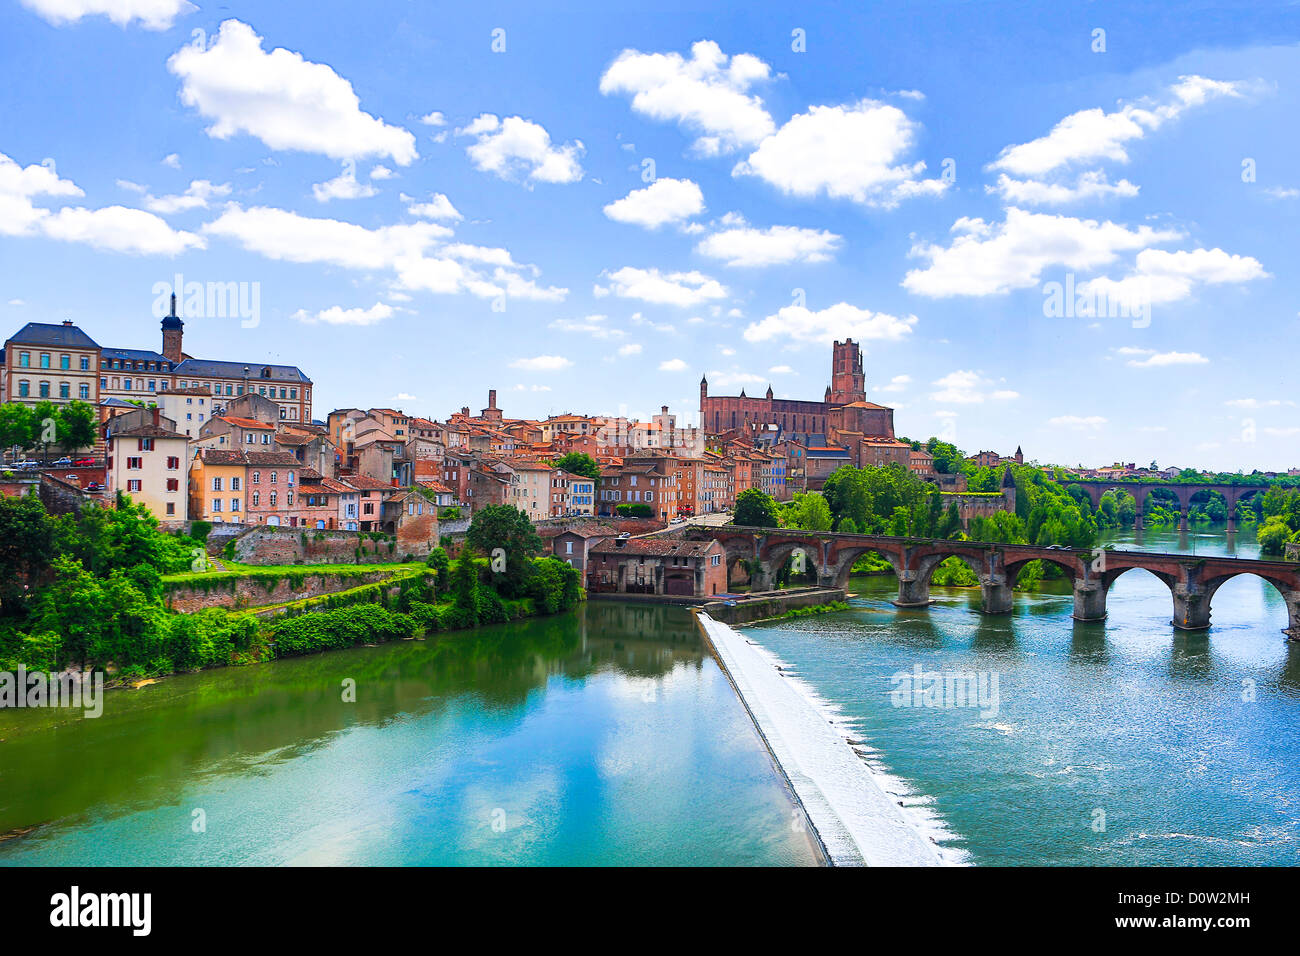 France, Europe, travel, Albi, Saint Cecile, Cathedral, world heritage, Bridge, river, architecture, bridge, brick, - Stock Image